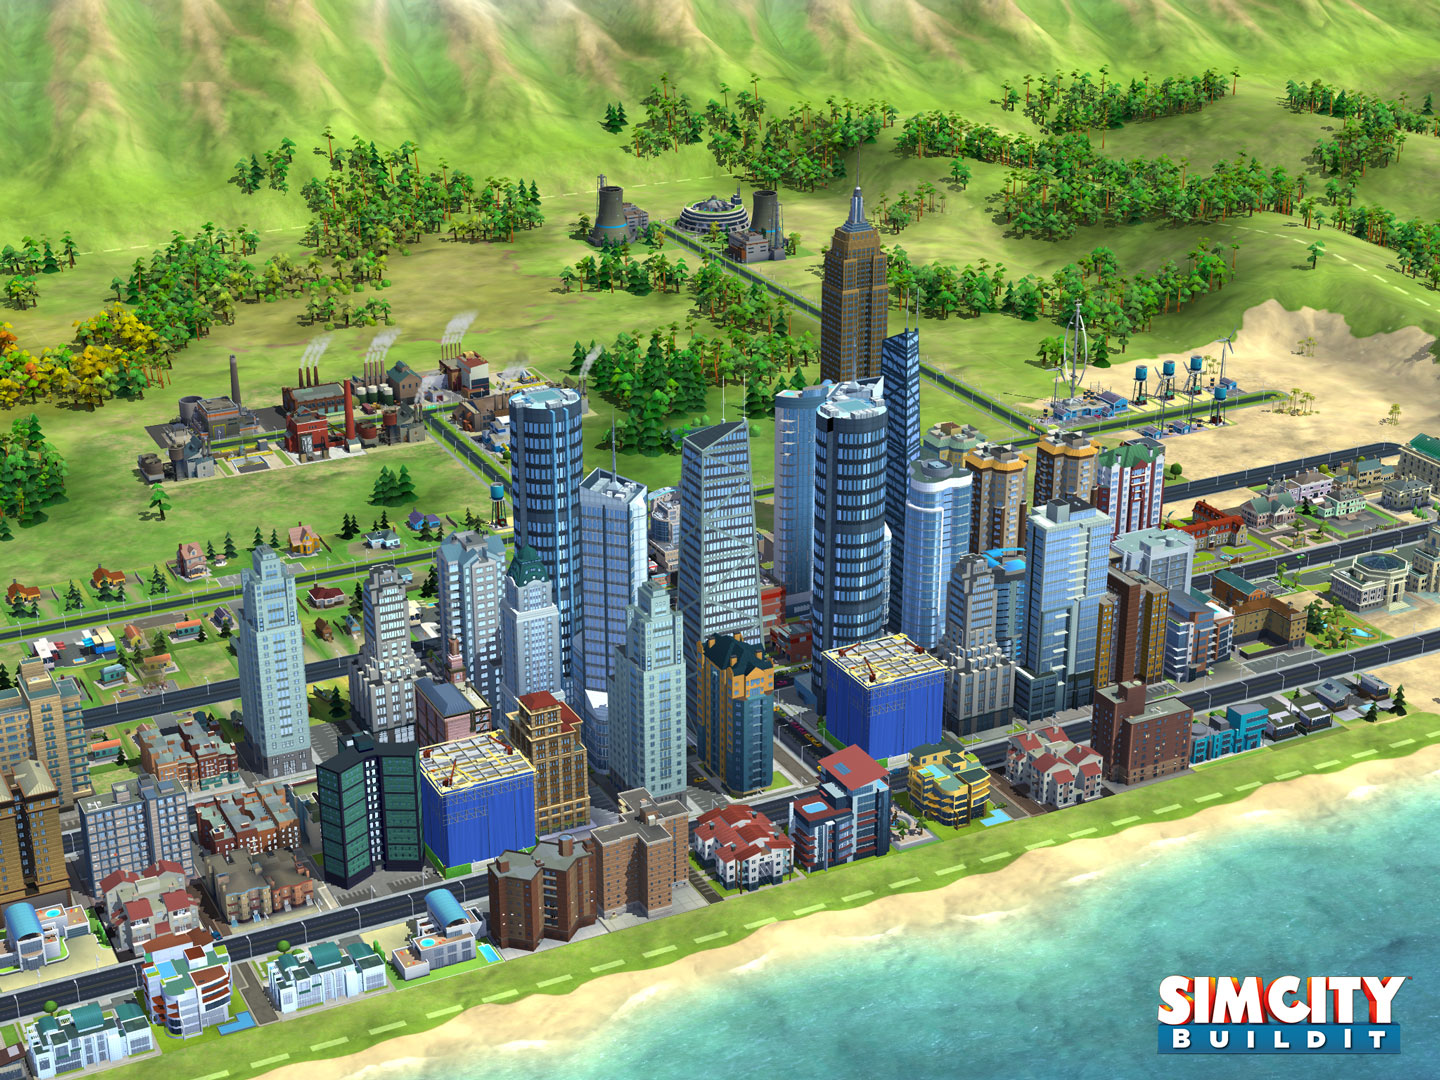 SimCity BuildIt (captura de pantalla 001 del iPad)